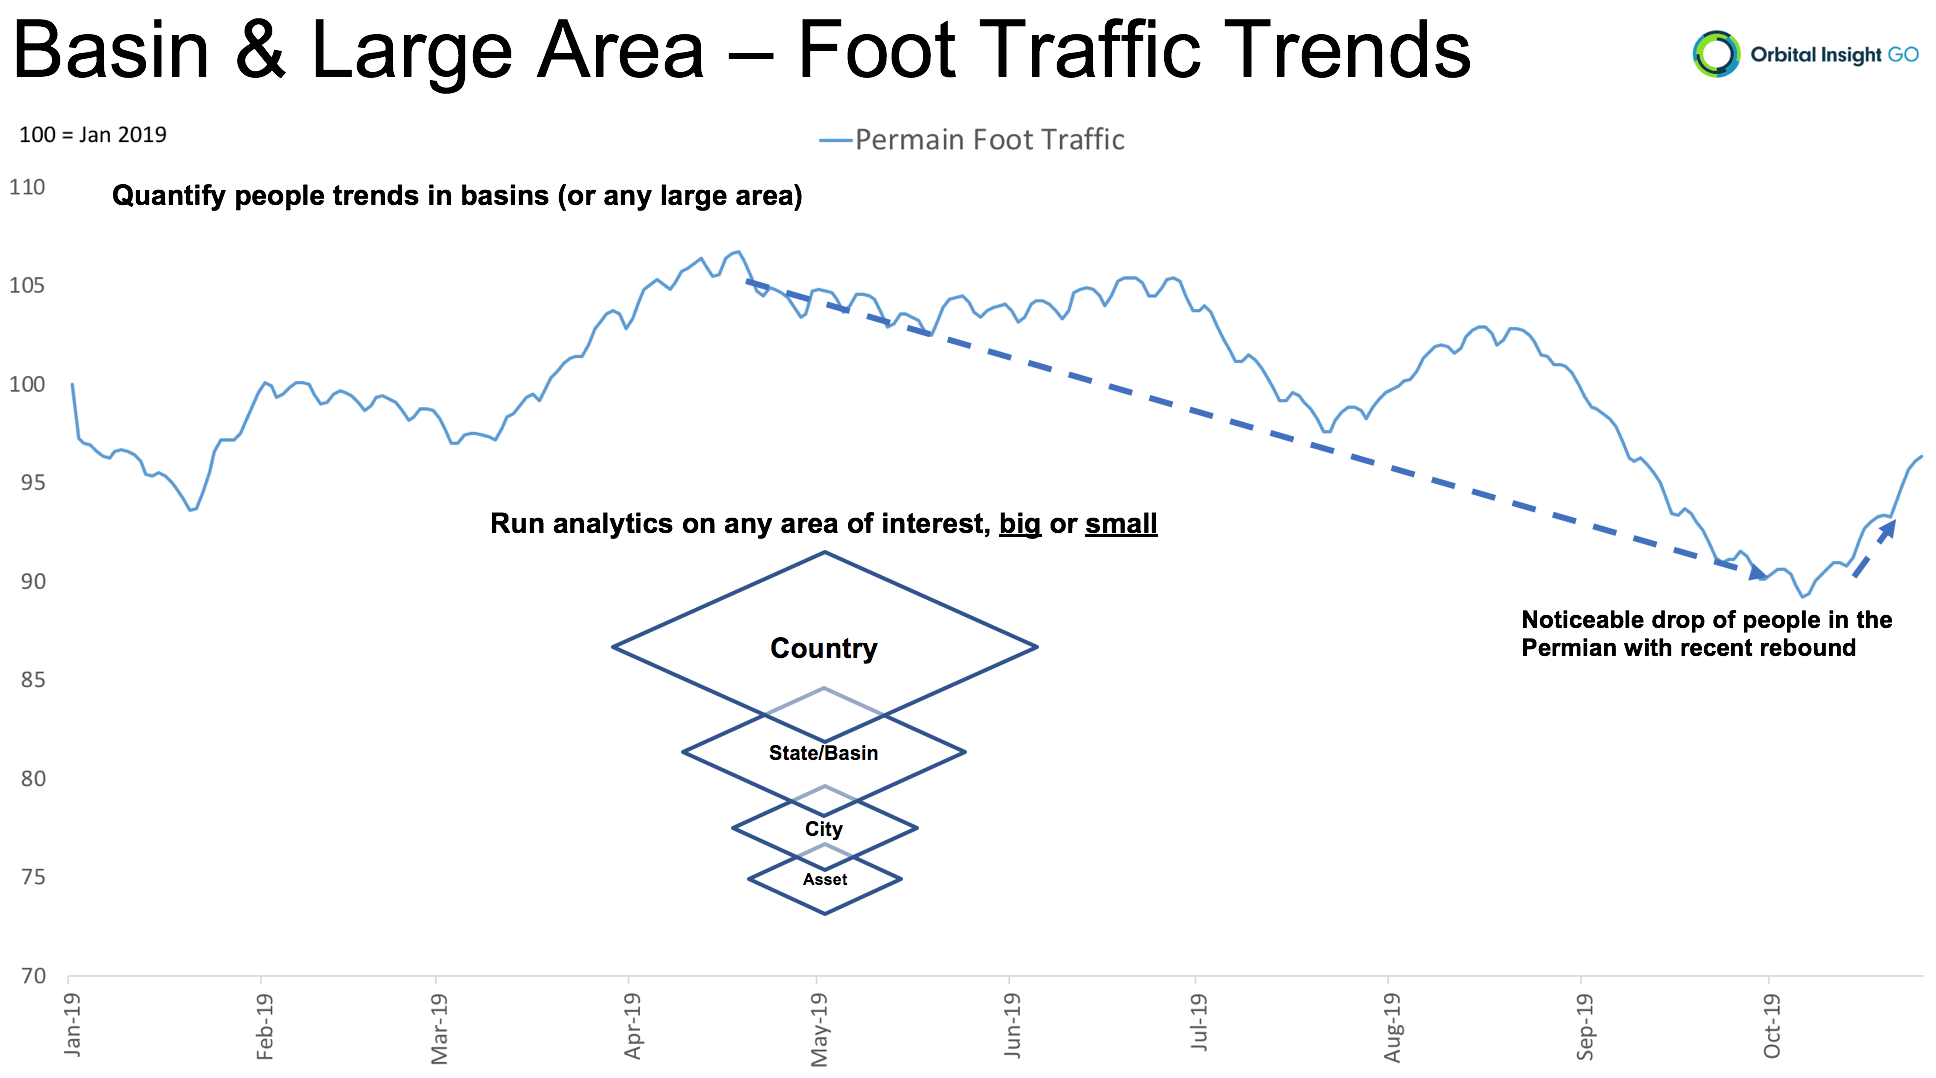 Foot traffic in the Permian Basin